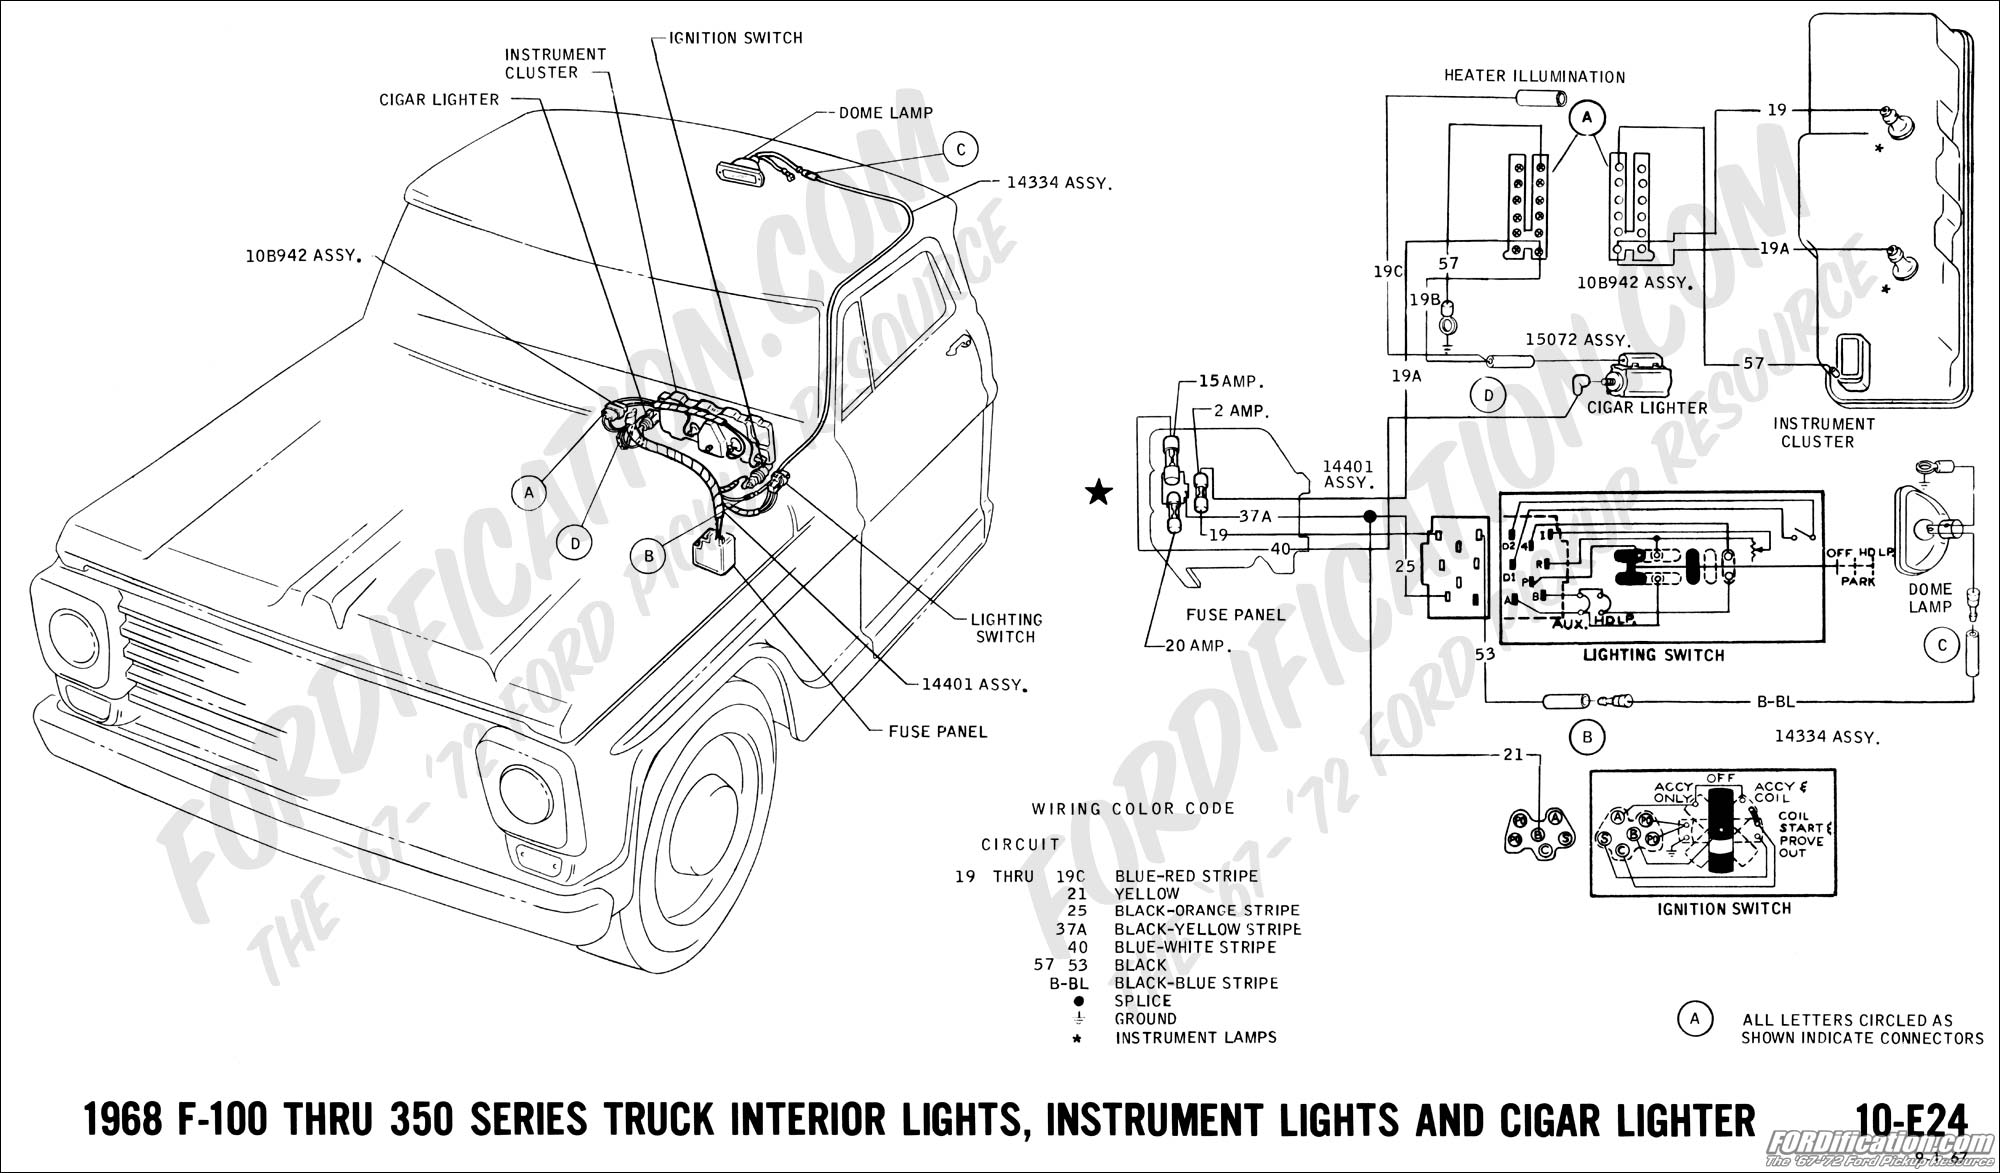 wiring schematics and lights